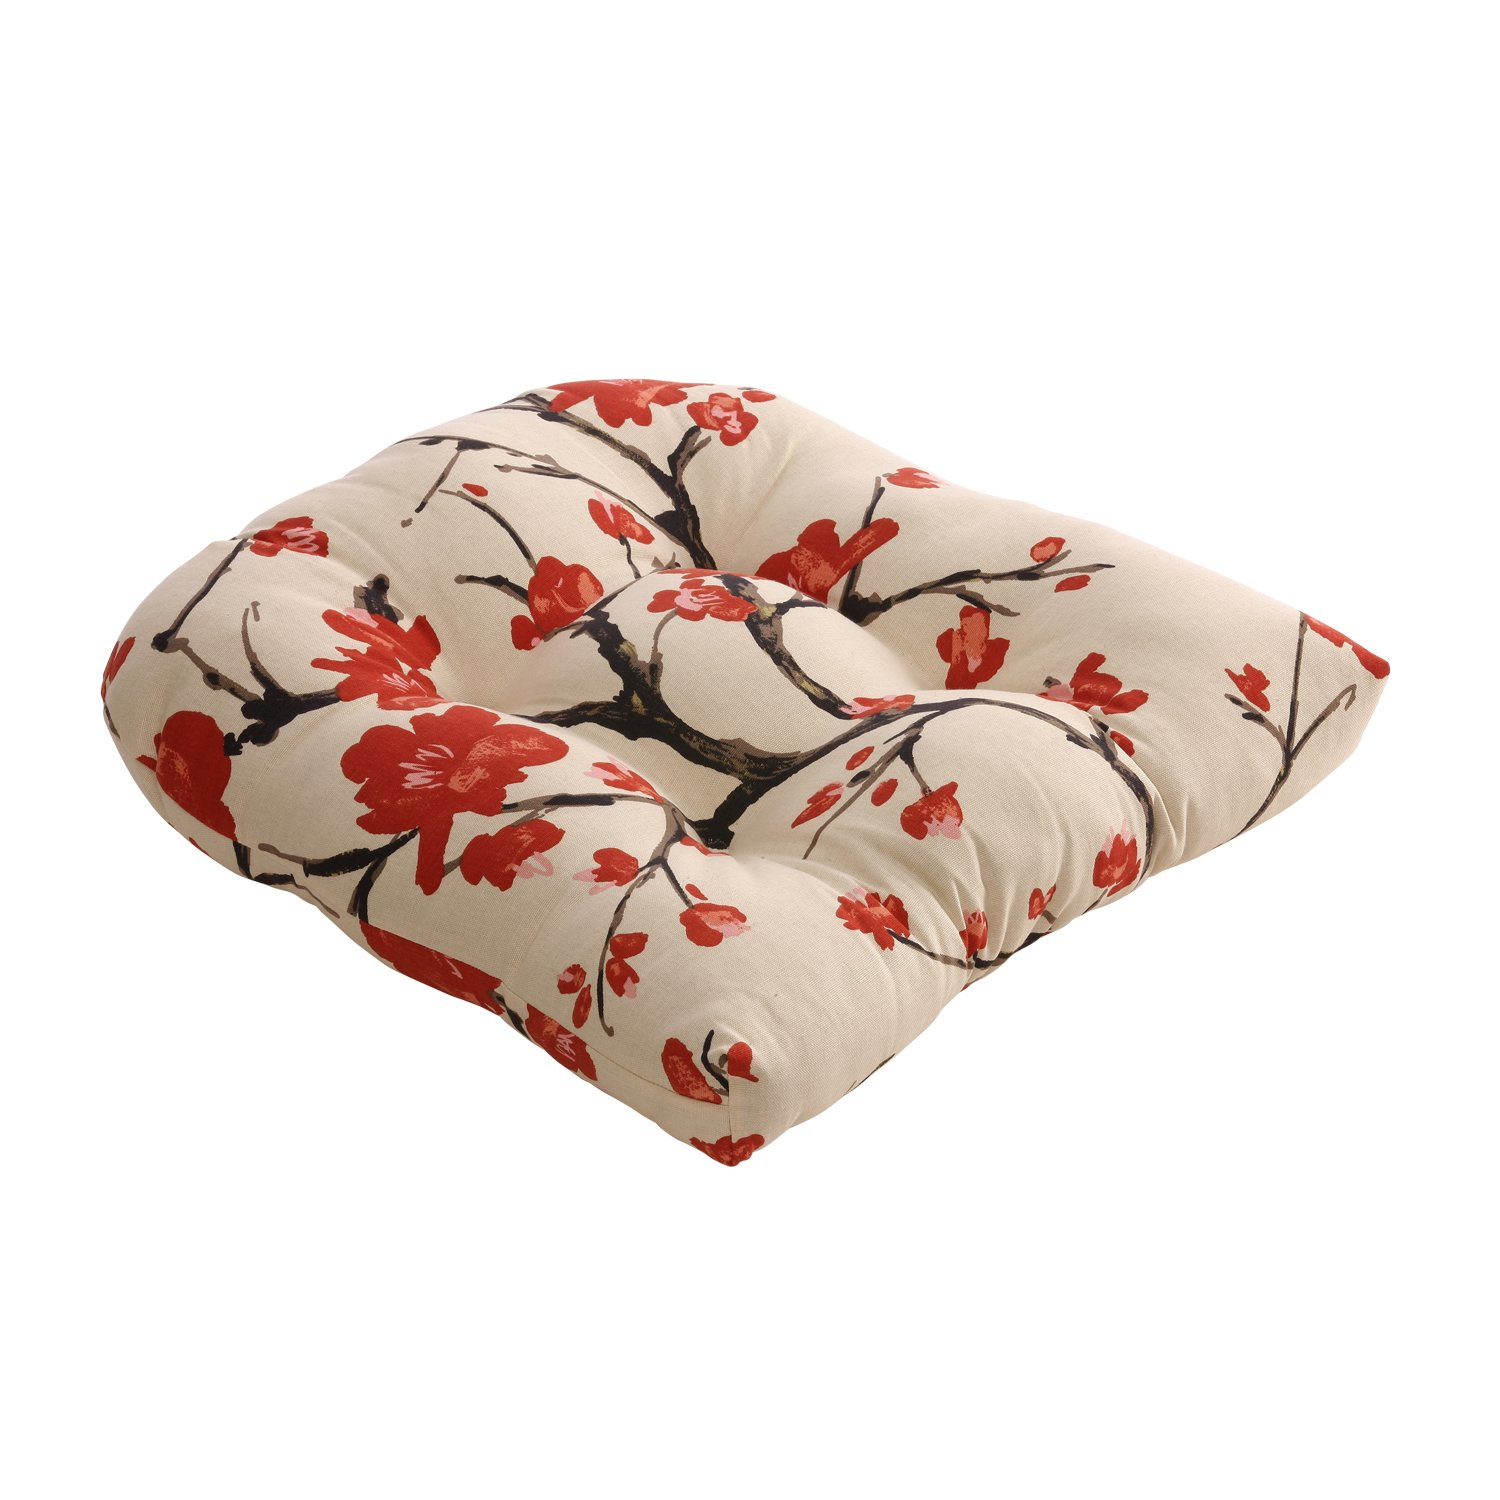 Pillow Perfect Flowering Branch Chair Cushion, Beige Red